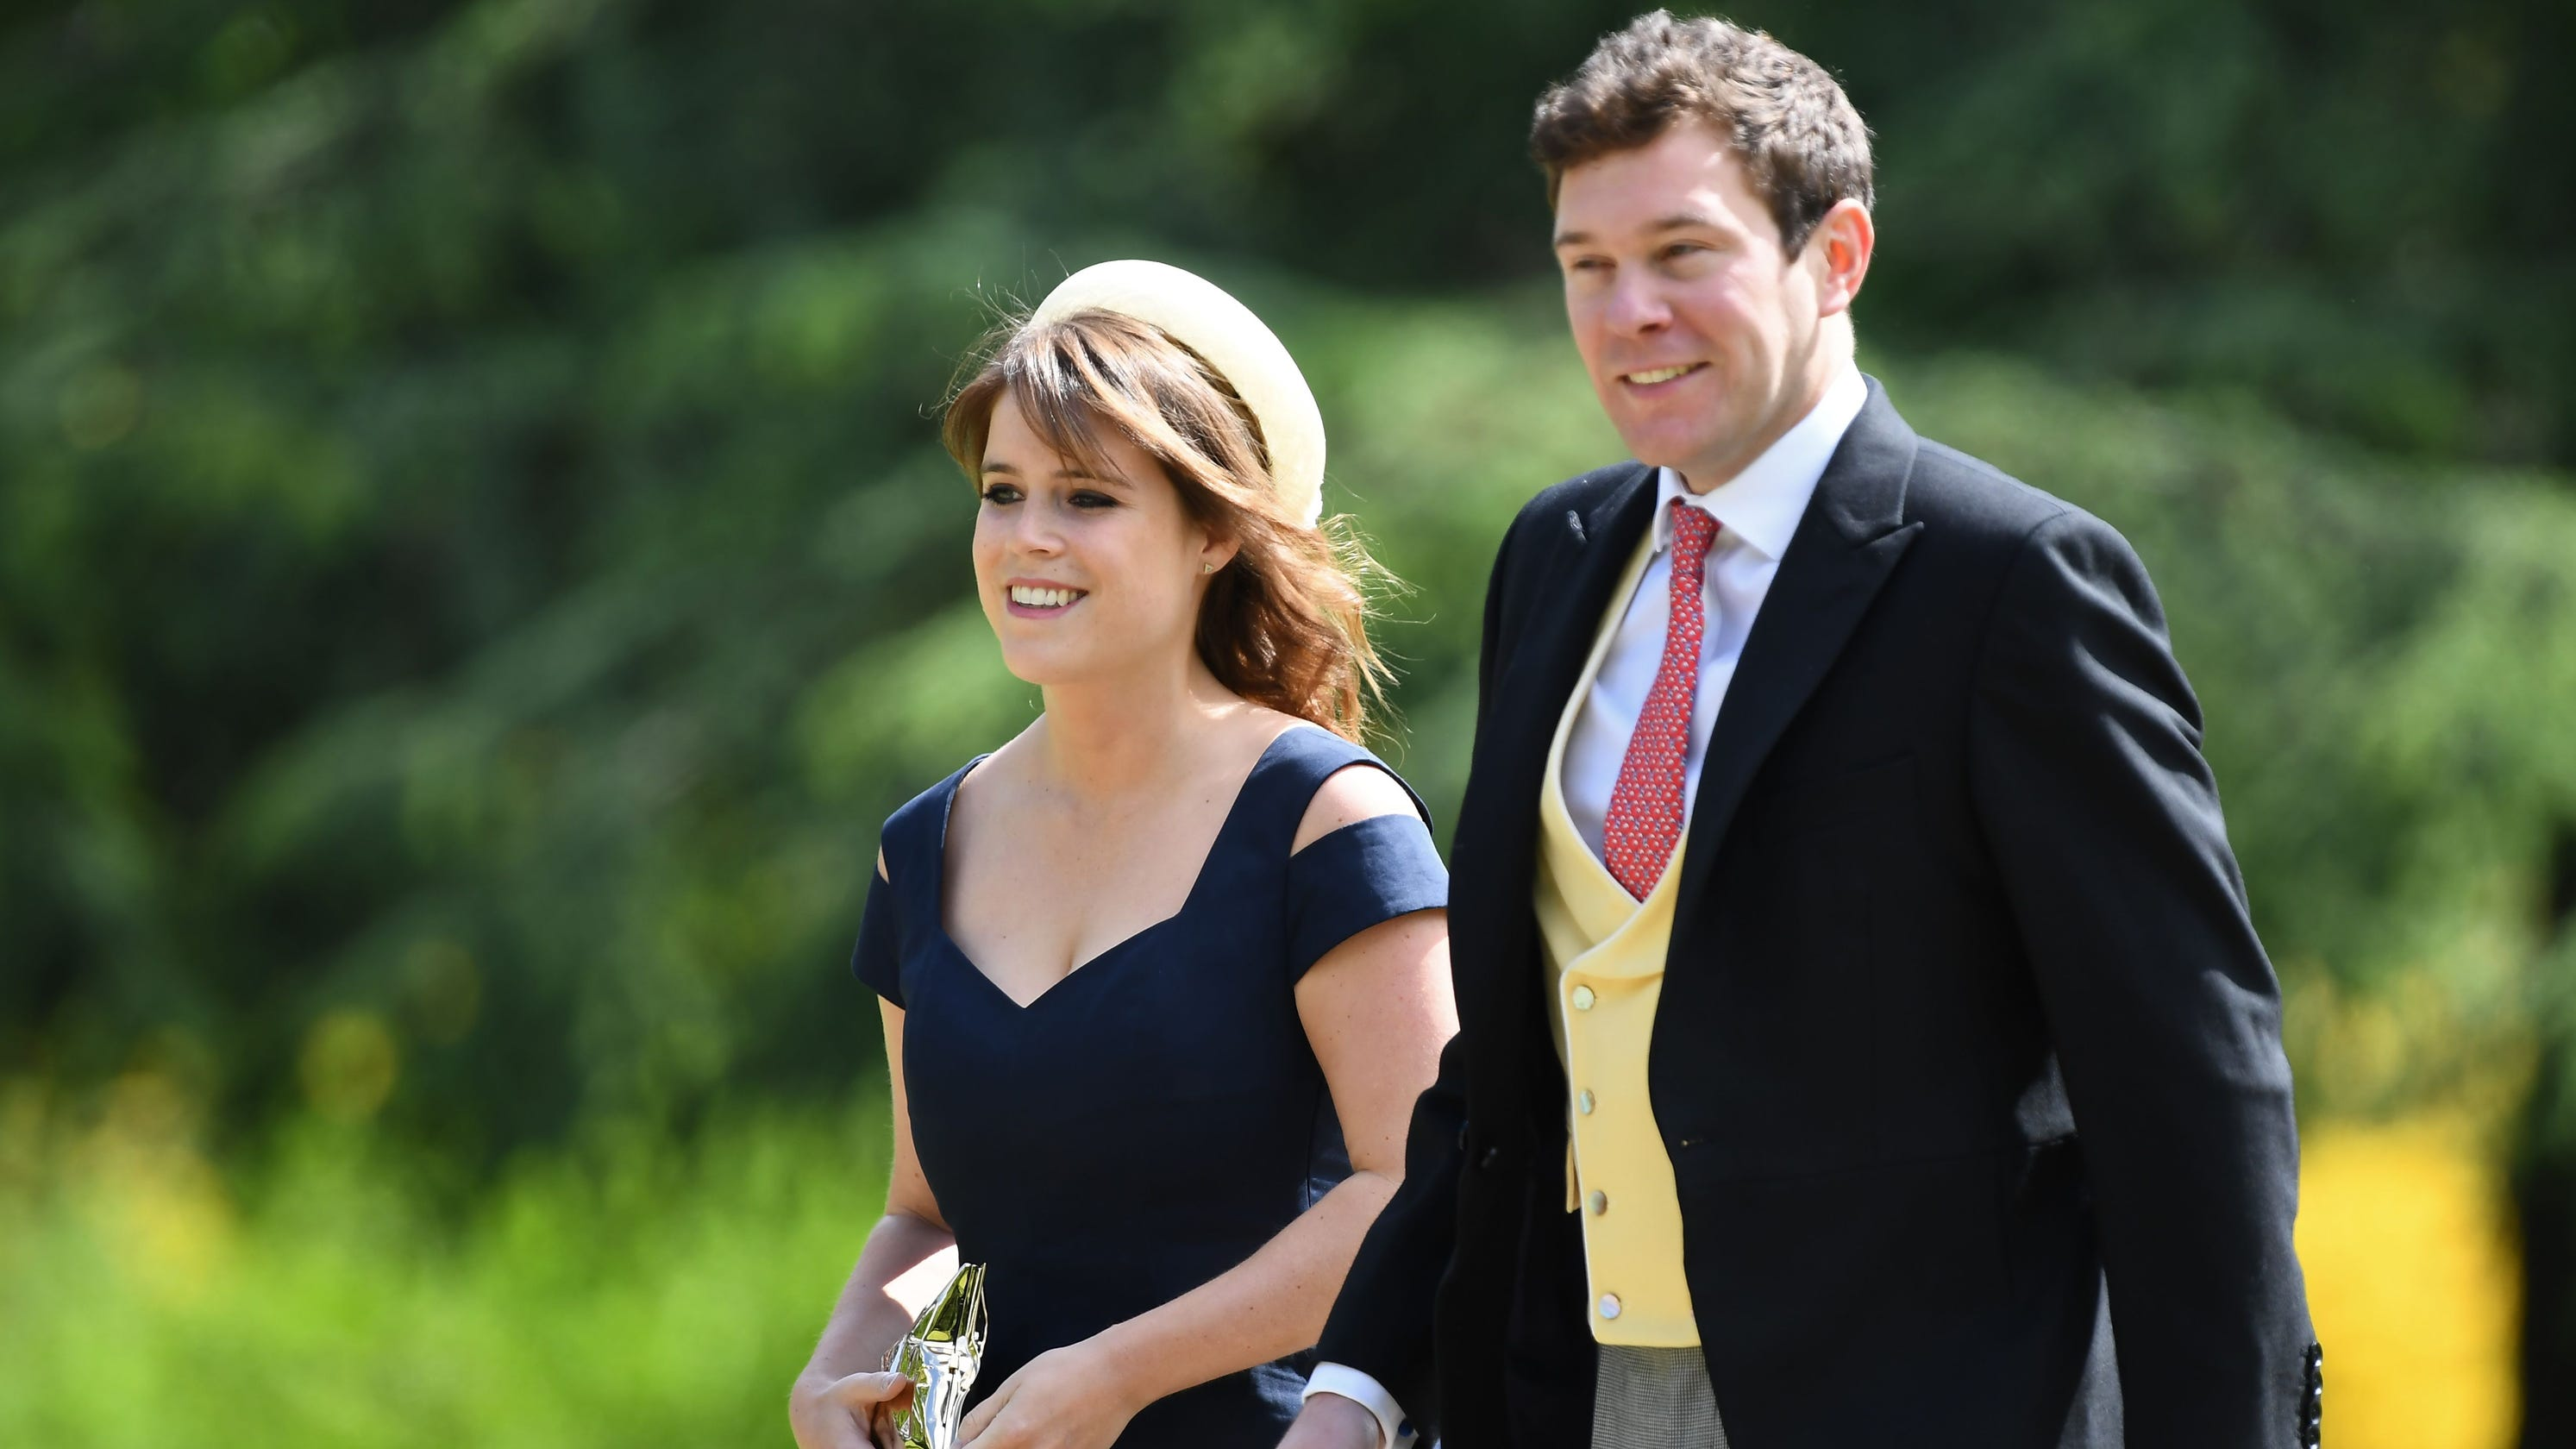 Princess Eugenie Wedding Televised.Princess Eugenie S Must See Royal Wedding Everything You Need To Know